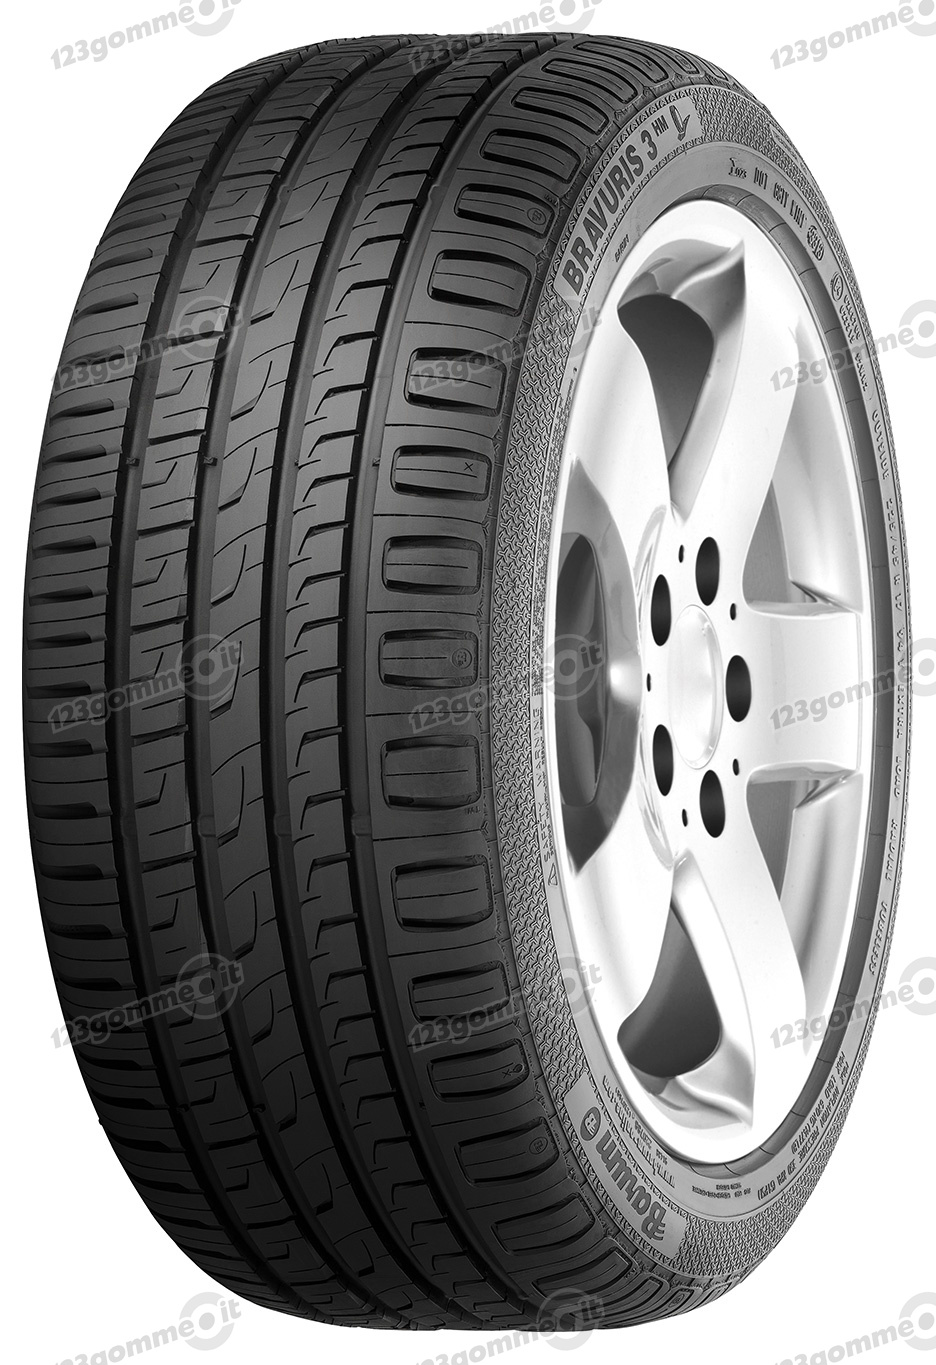 215/55 R16 97H Bravuris 3HM XL  Bravuris 3HM XL